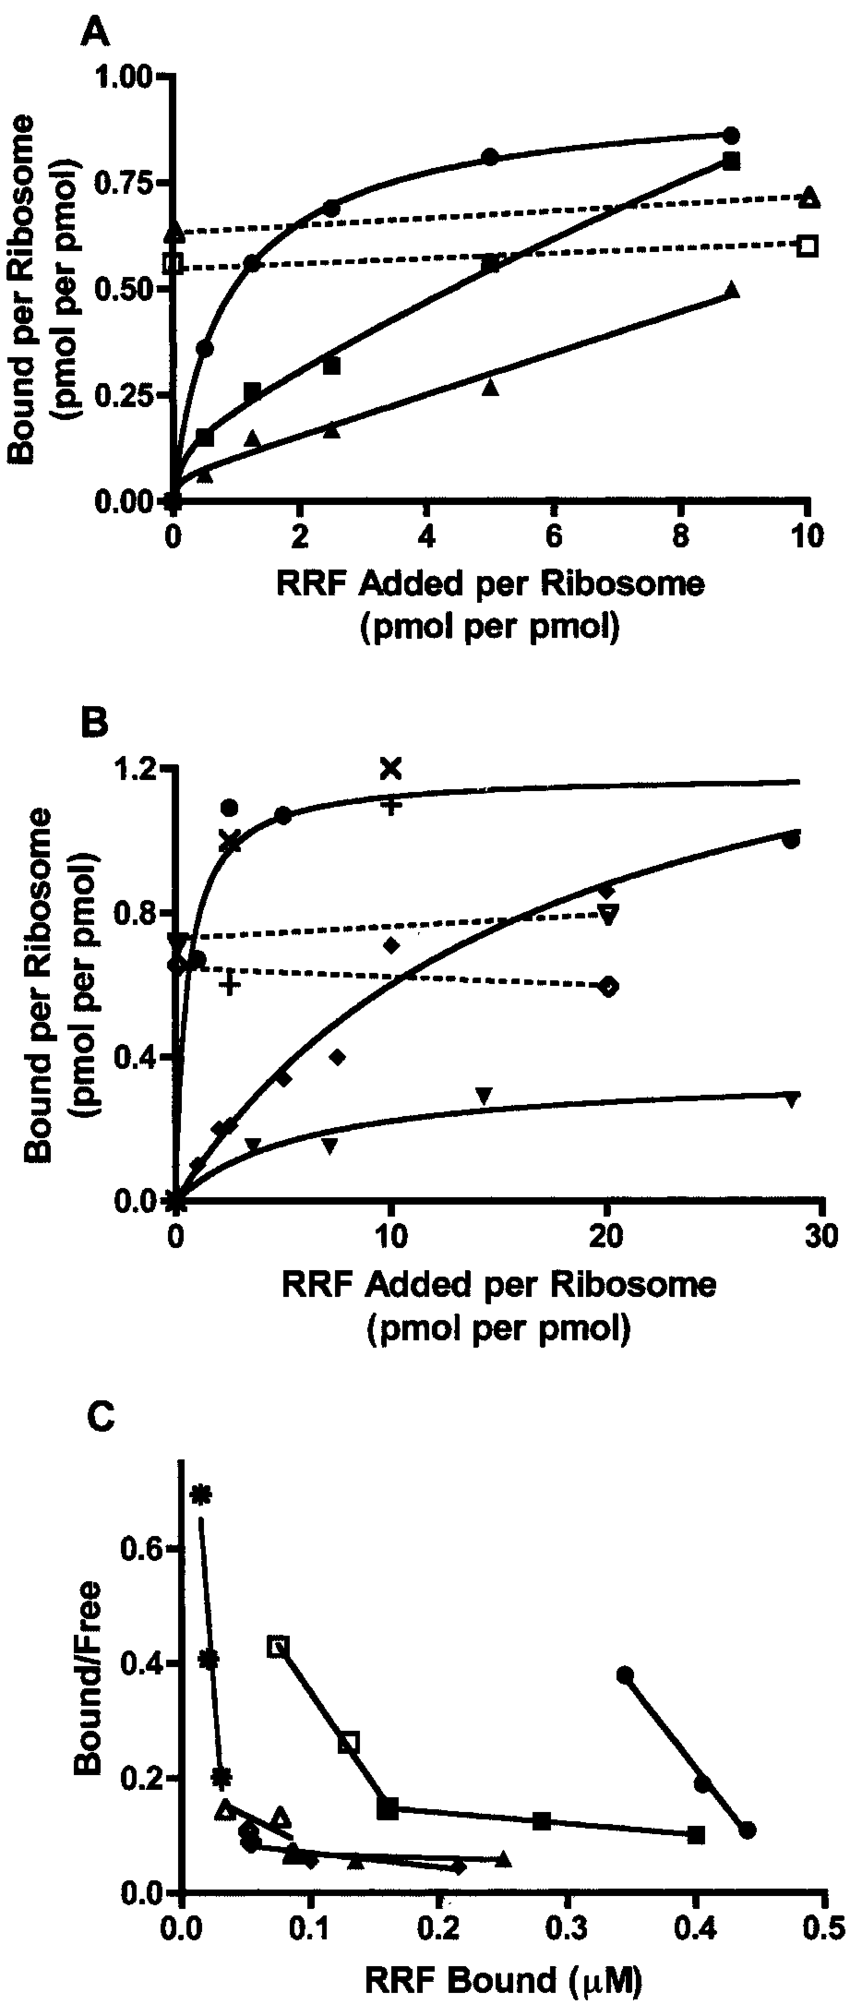 medium resolution of ribosome bound ef g affects the binding of rrf to 70 s ribosomes a download scientific diagram